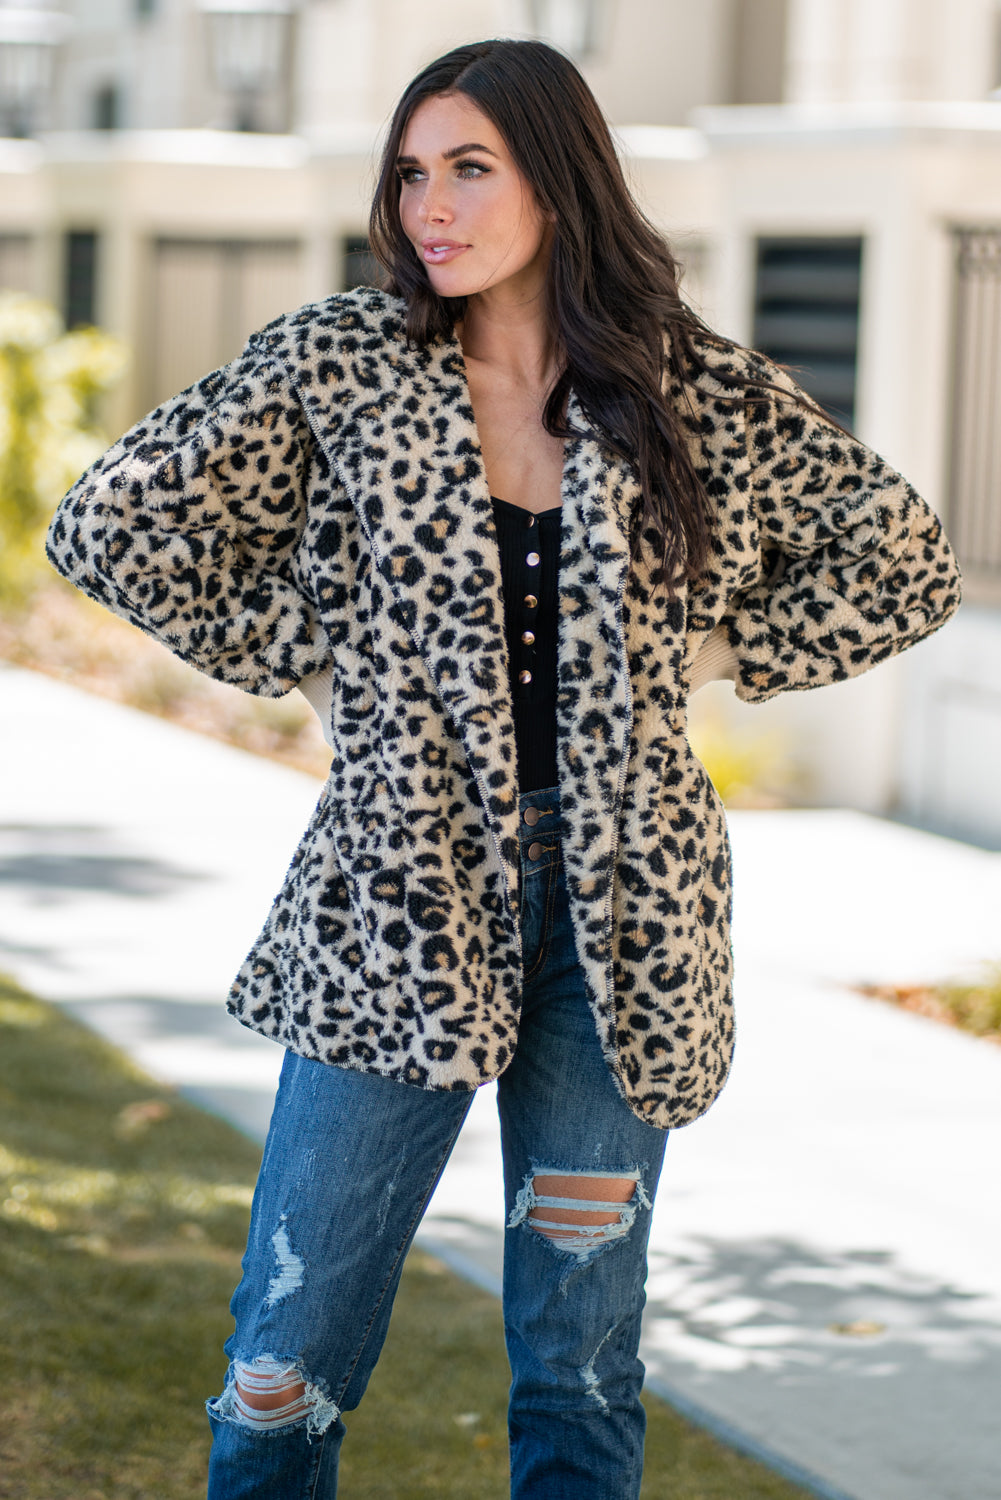 "Hem & Thread   Feel your inner animal in this leopard print sherpa jacket. Pair with a great boyfriend denim in heels for a trendy fun look.  Collection: Fall 2020 Color: Leopard Neckline: Open Sleeve: Long 100% POLYESTER 97% ACRYLIC 3% SPANDEX Style #: 8432 Contact us for any additional measurements or sizing.  Haley is 5'6"" and wears size 3 in jeans, a small top and 7.5 in shoes. This jacket is a one size fits most and looks great on everyone!"